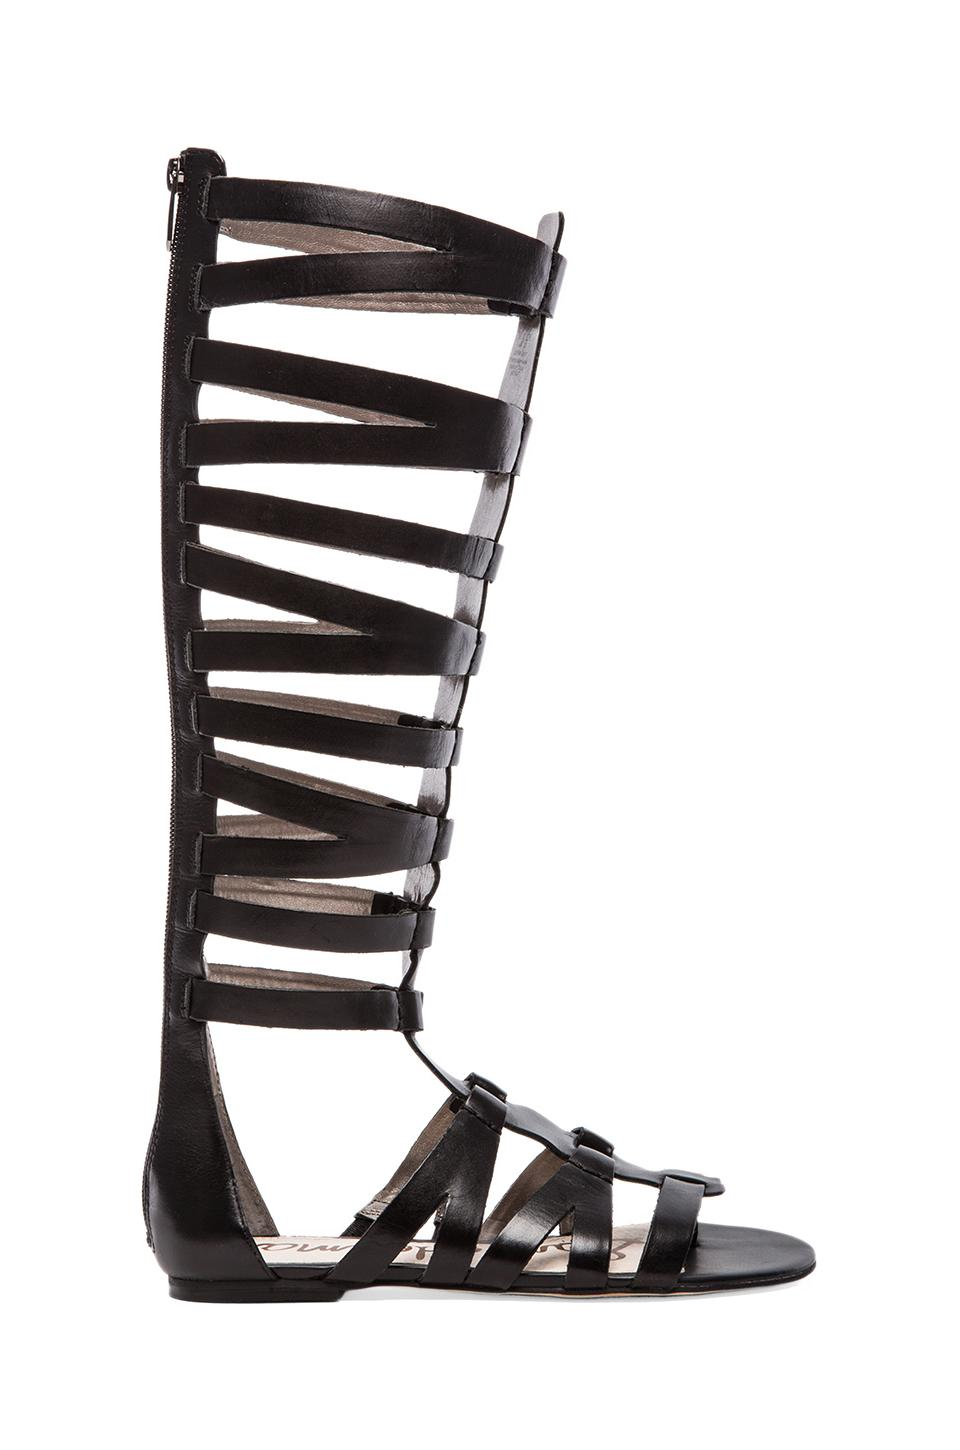 Sam Edelman Bryant Gladiator Sandal in Black